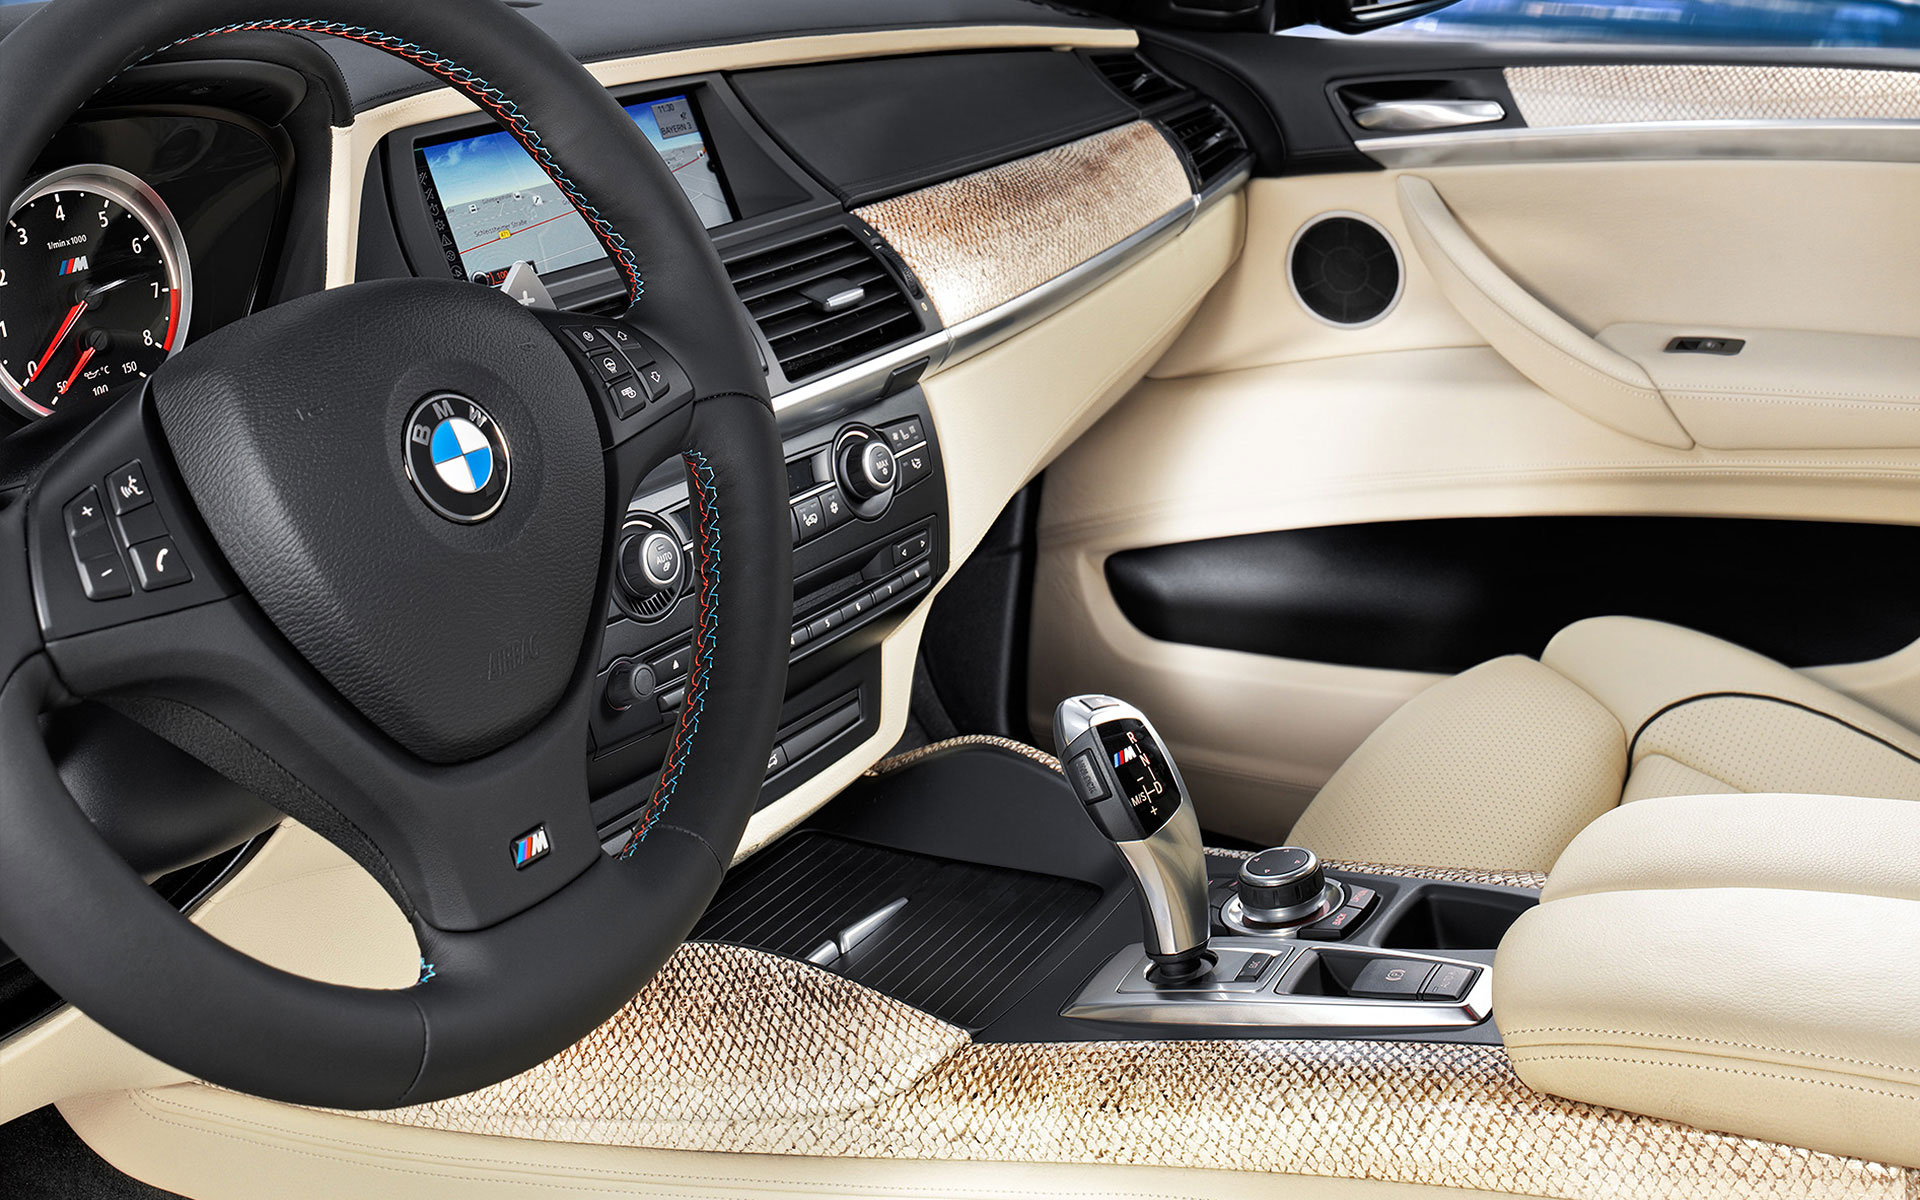 BMW Individual salmon leather interior trim